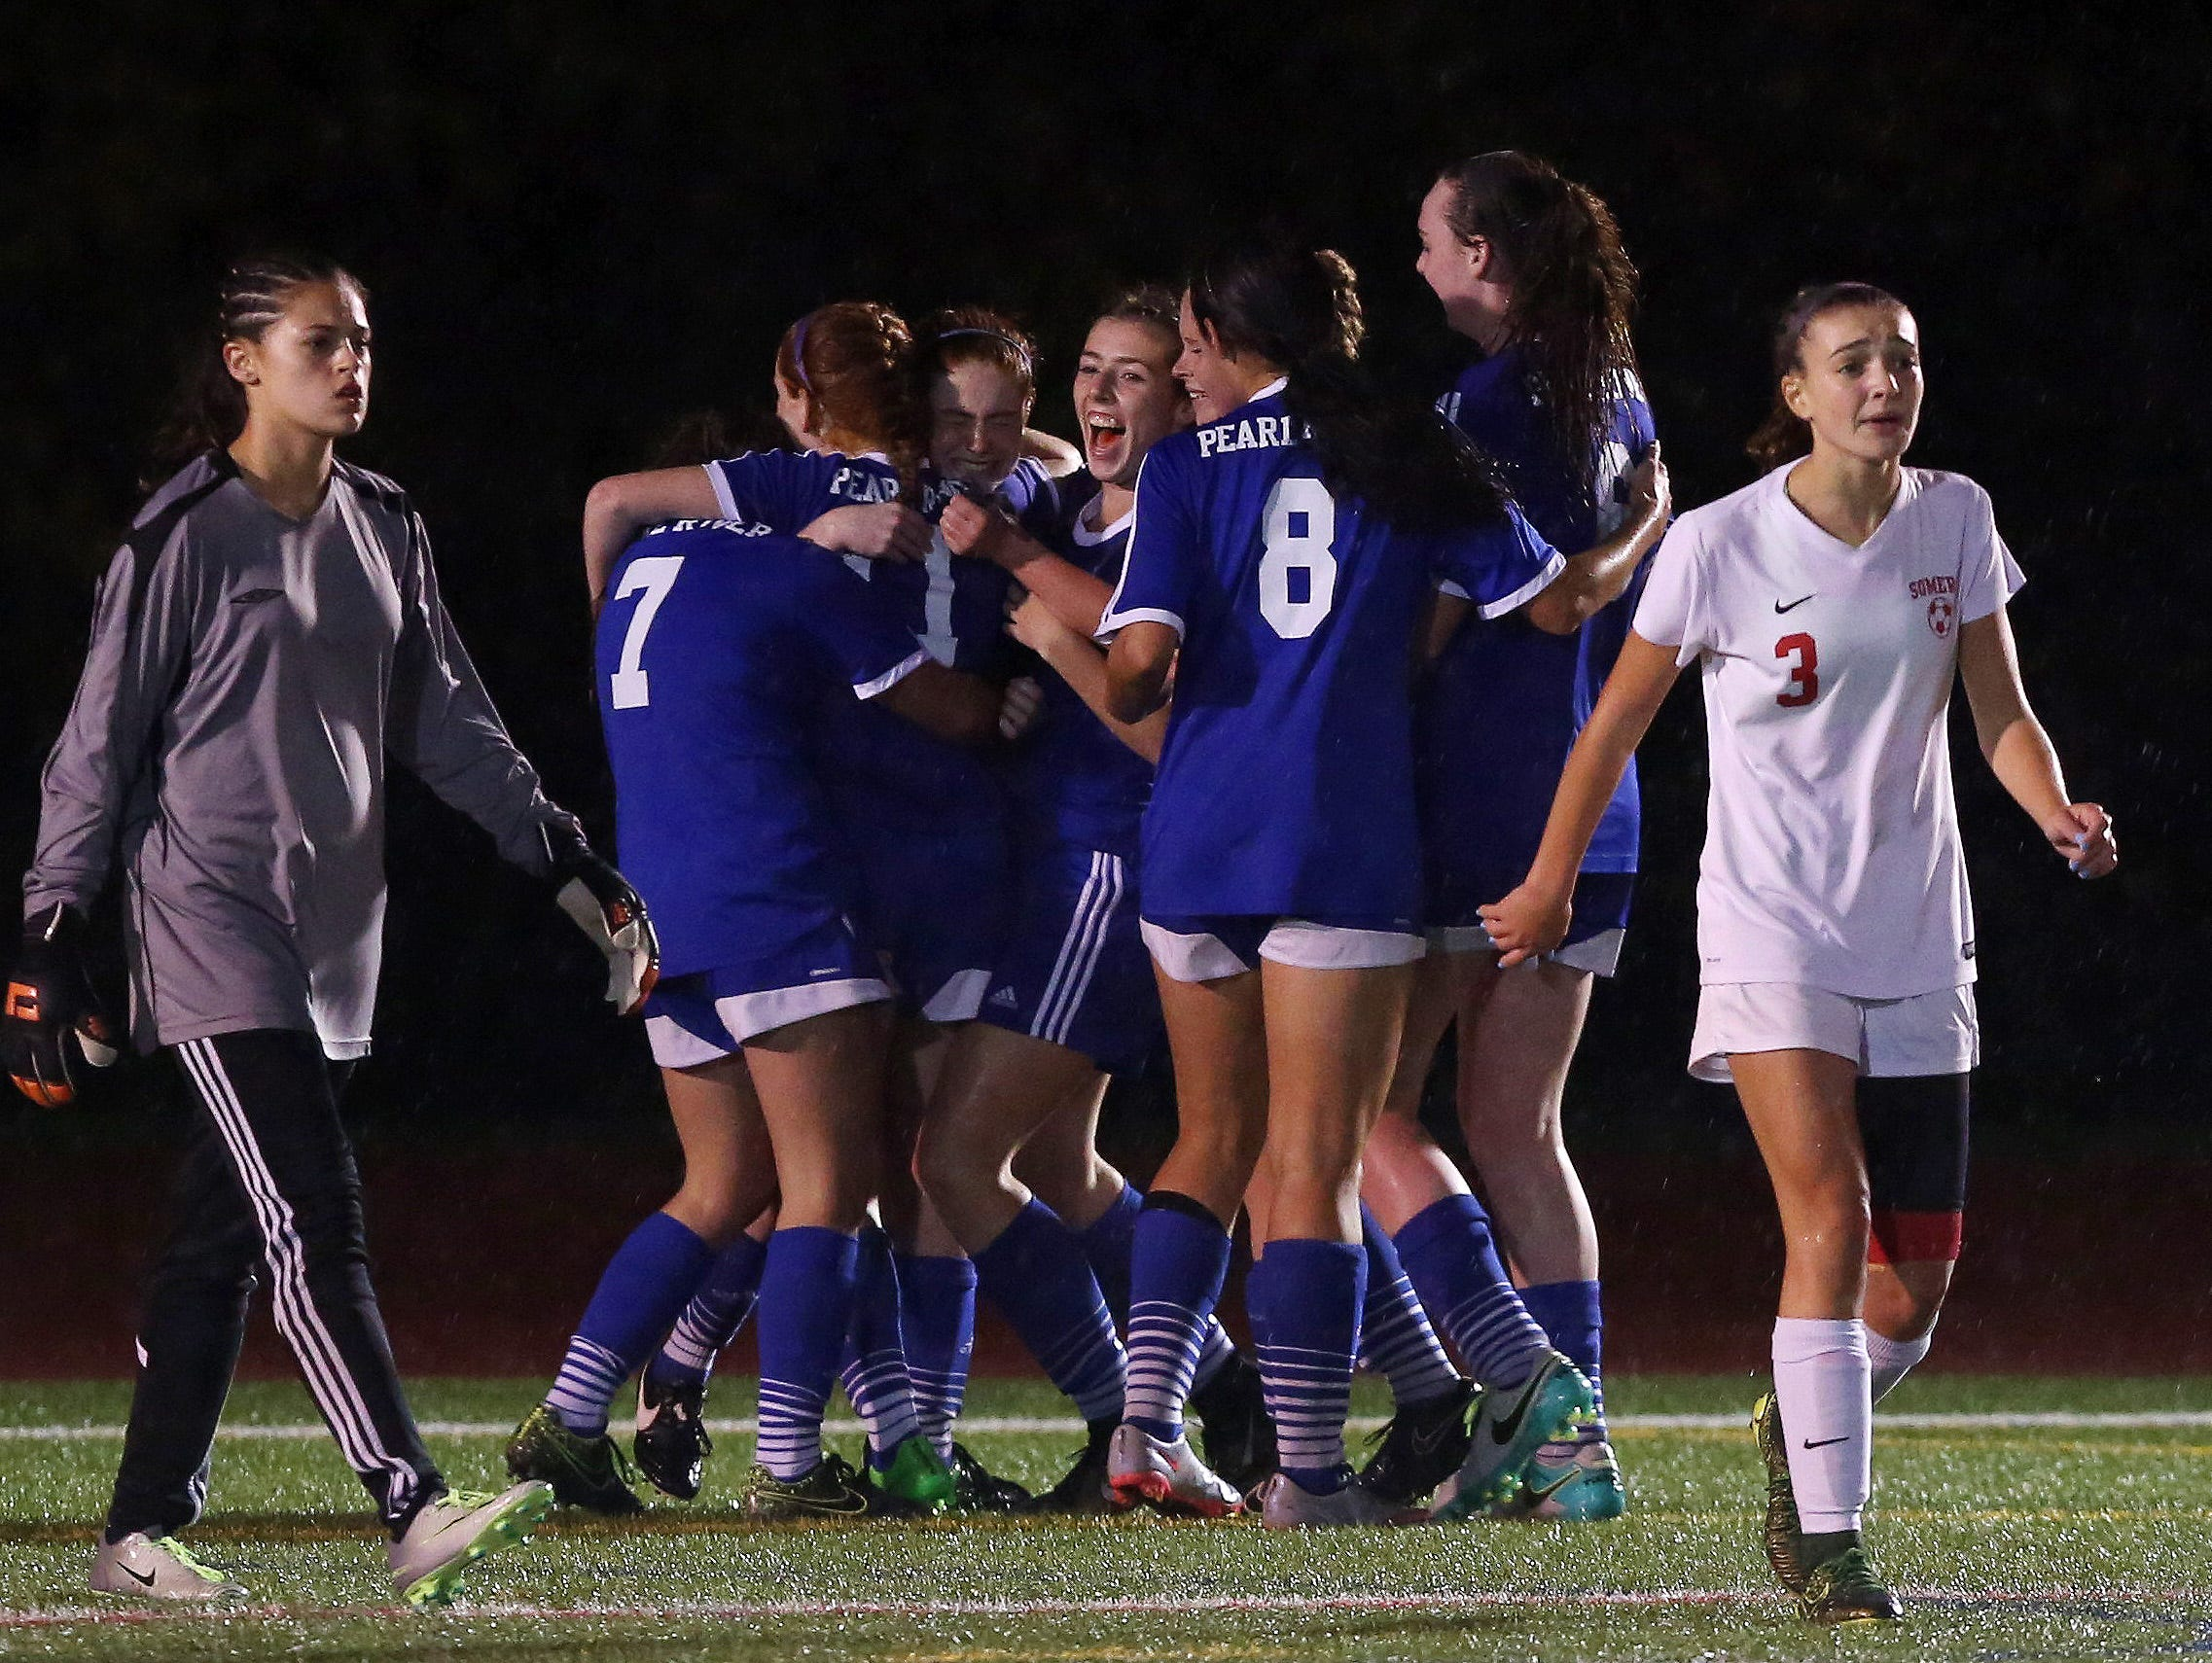 Pearl River players celebrate a second half go ahead goal by Shaelynn Guilfoyle against Somers in the girls soccer Section 1 Class AA championship game at Yorktown High School Oct. 30, 2016. Pearl River won the game 2-1.